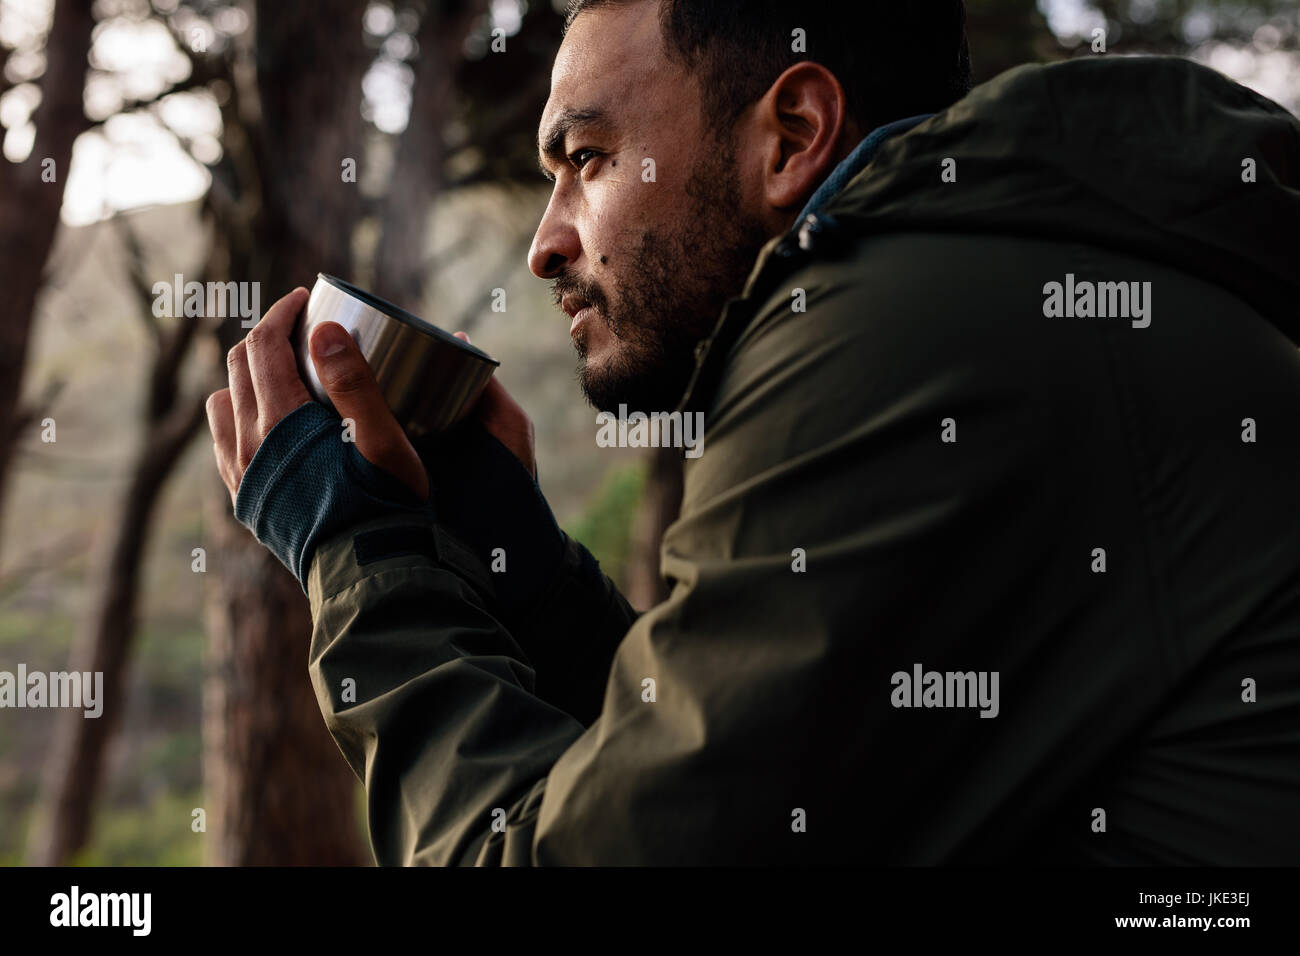 Close up shot of young man drinking hot coffee, taking break during hiking. Male hiker taking rest outdoors. - Stock Image